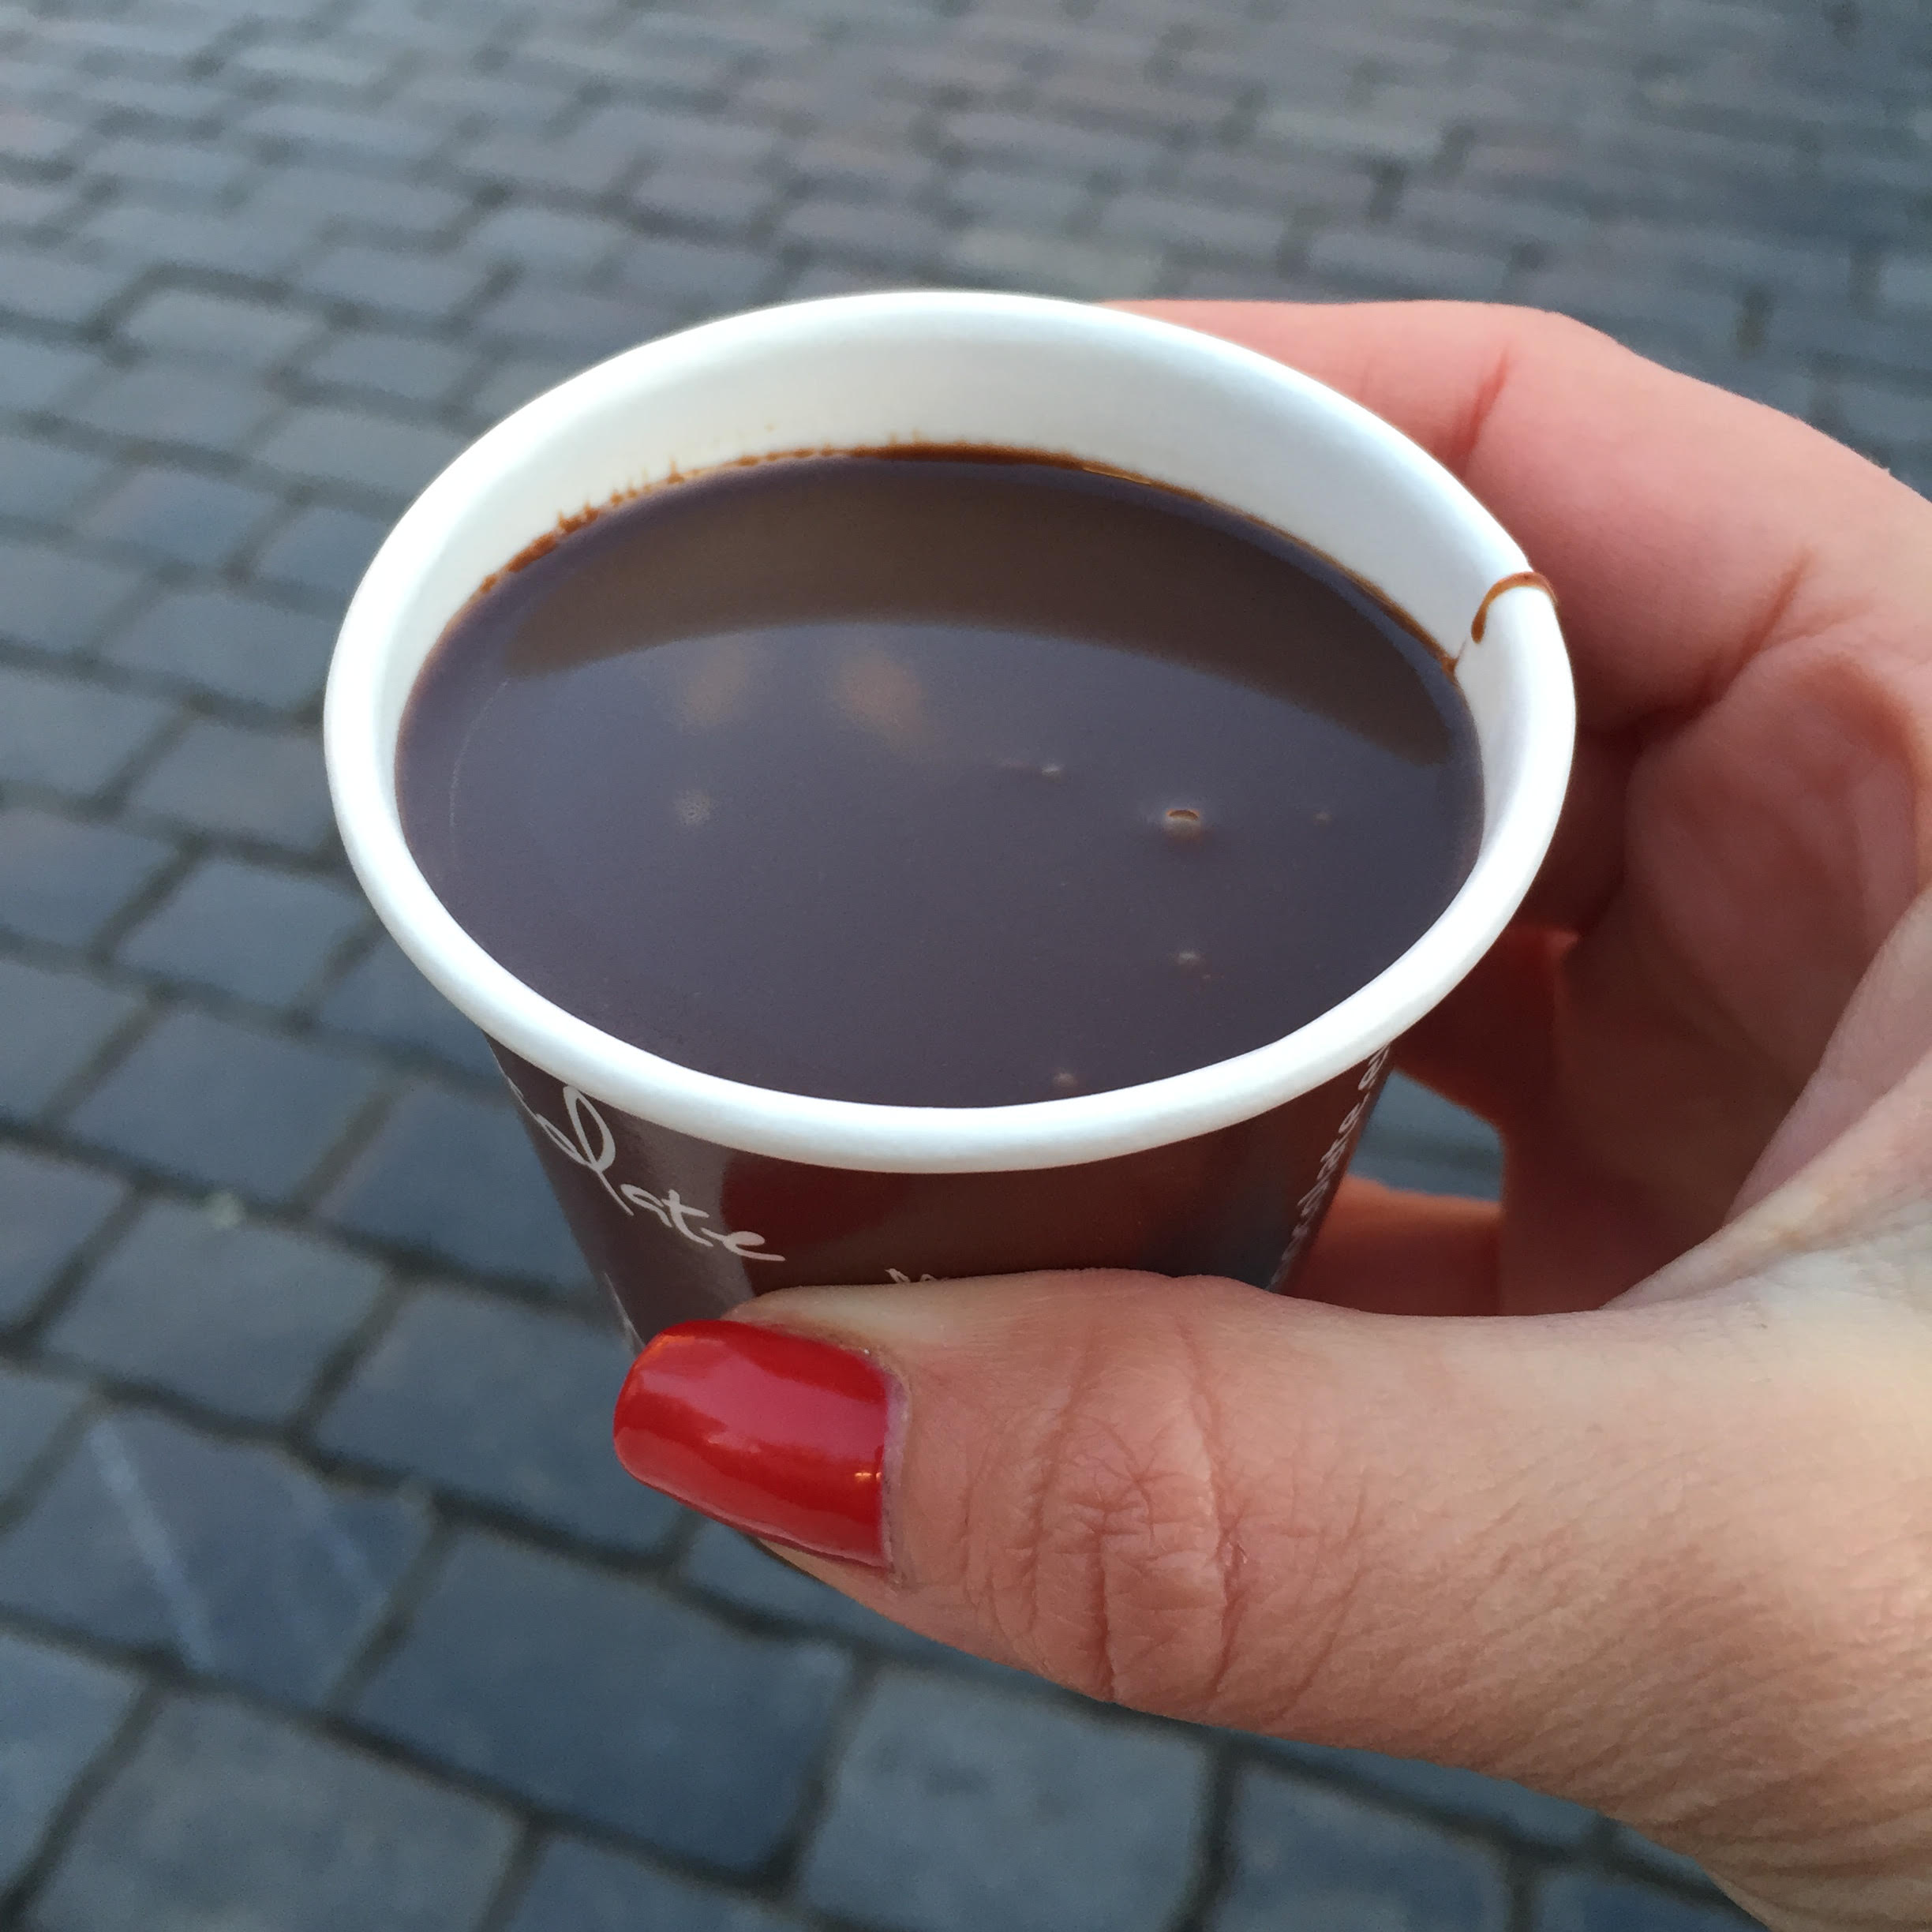 It was so chilly I had to have a shot of hot chocolate to warm up!